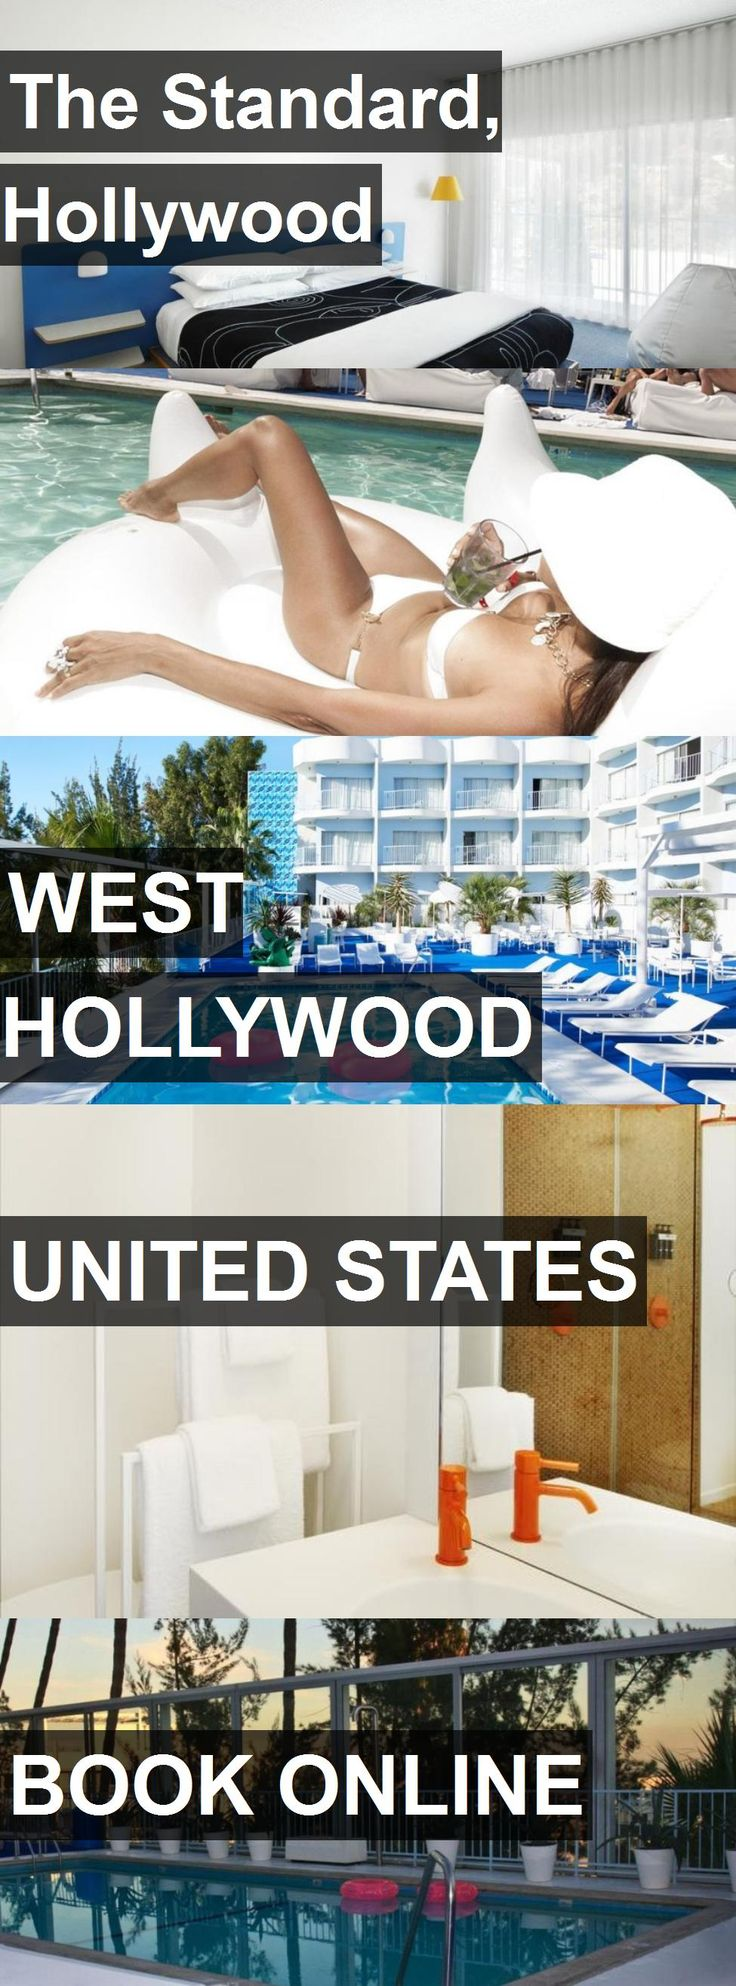 Hotel The Standard, Hollywood in West Hollywood, United States. For more information, photos, reviews and best prices please follow the link. #UnitedStates #WestHollywood #travel #vacation #hotel